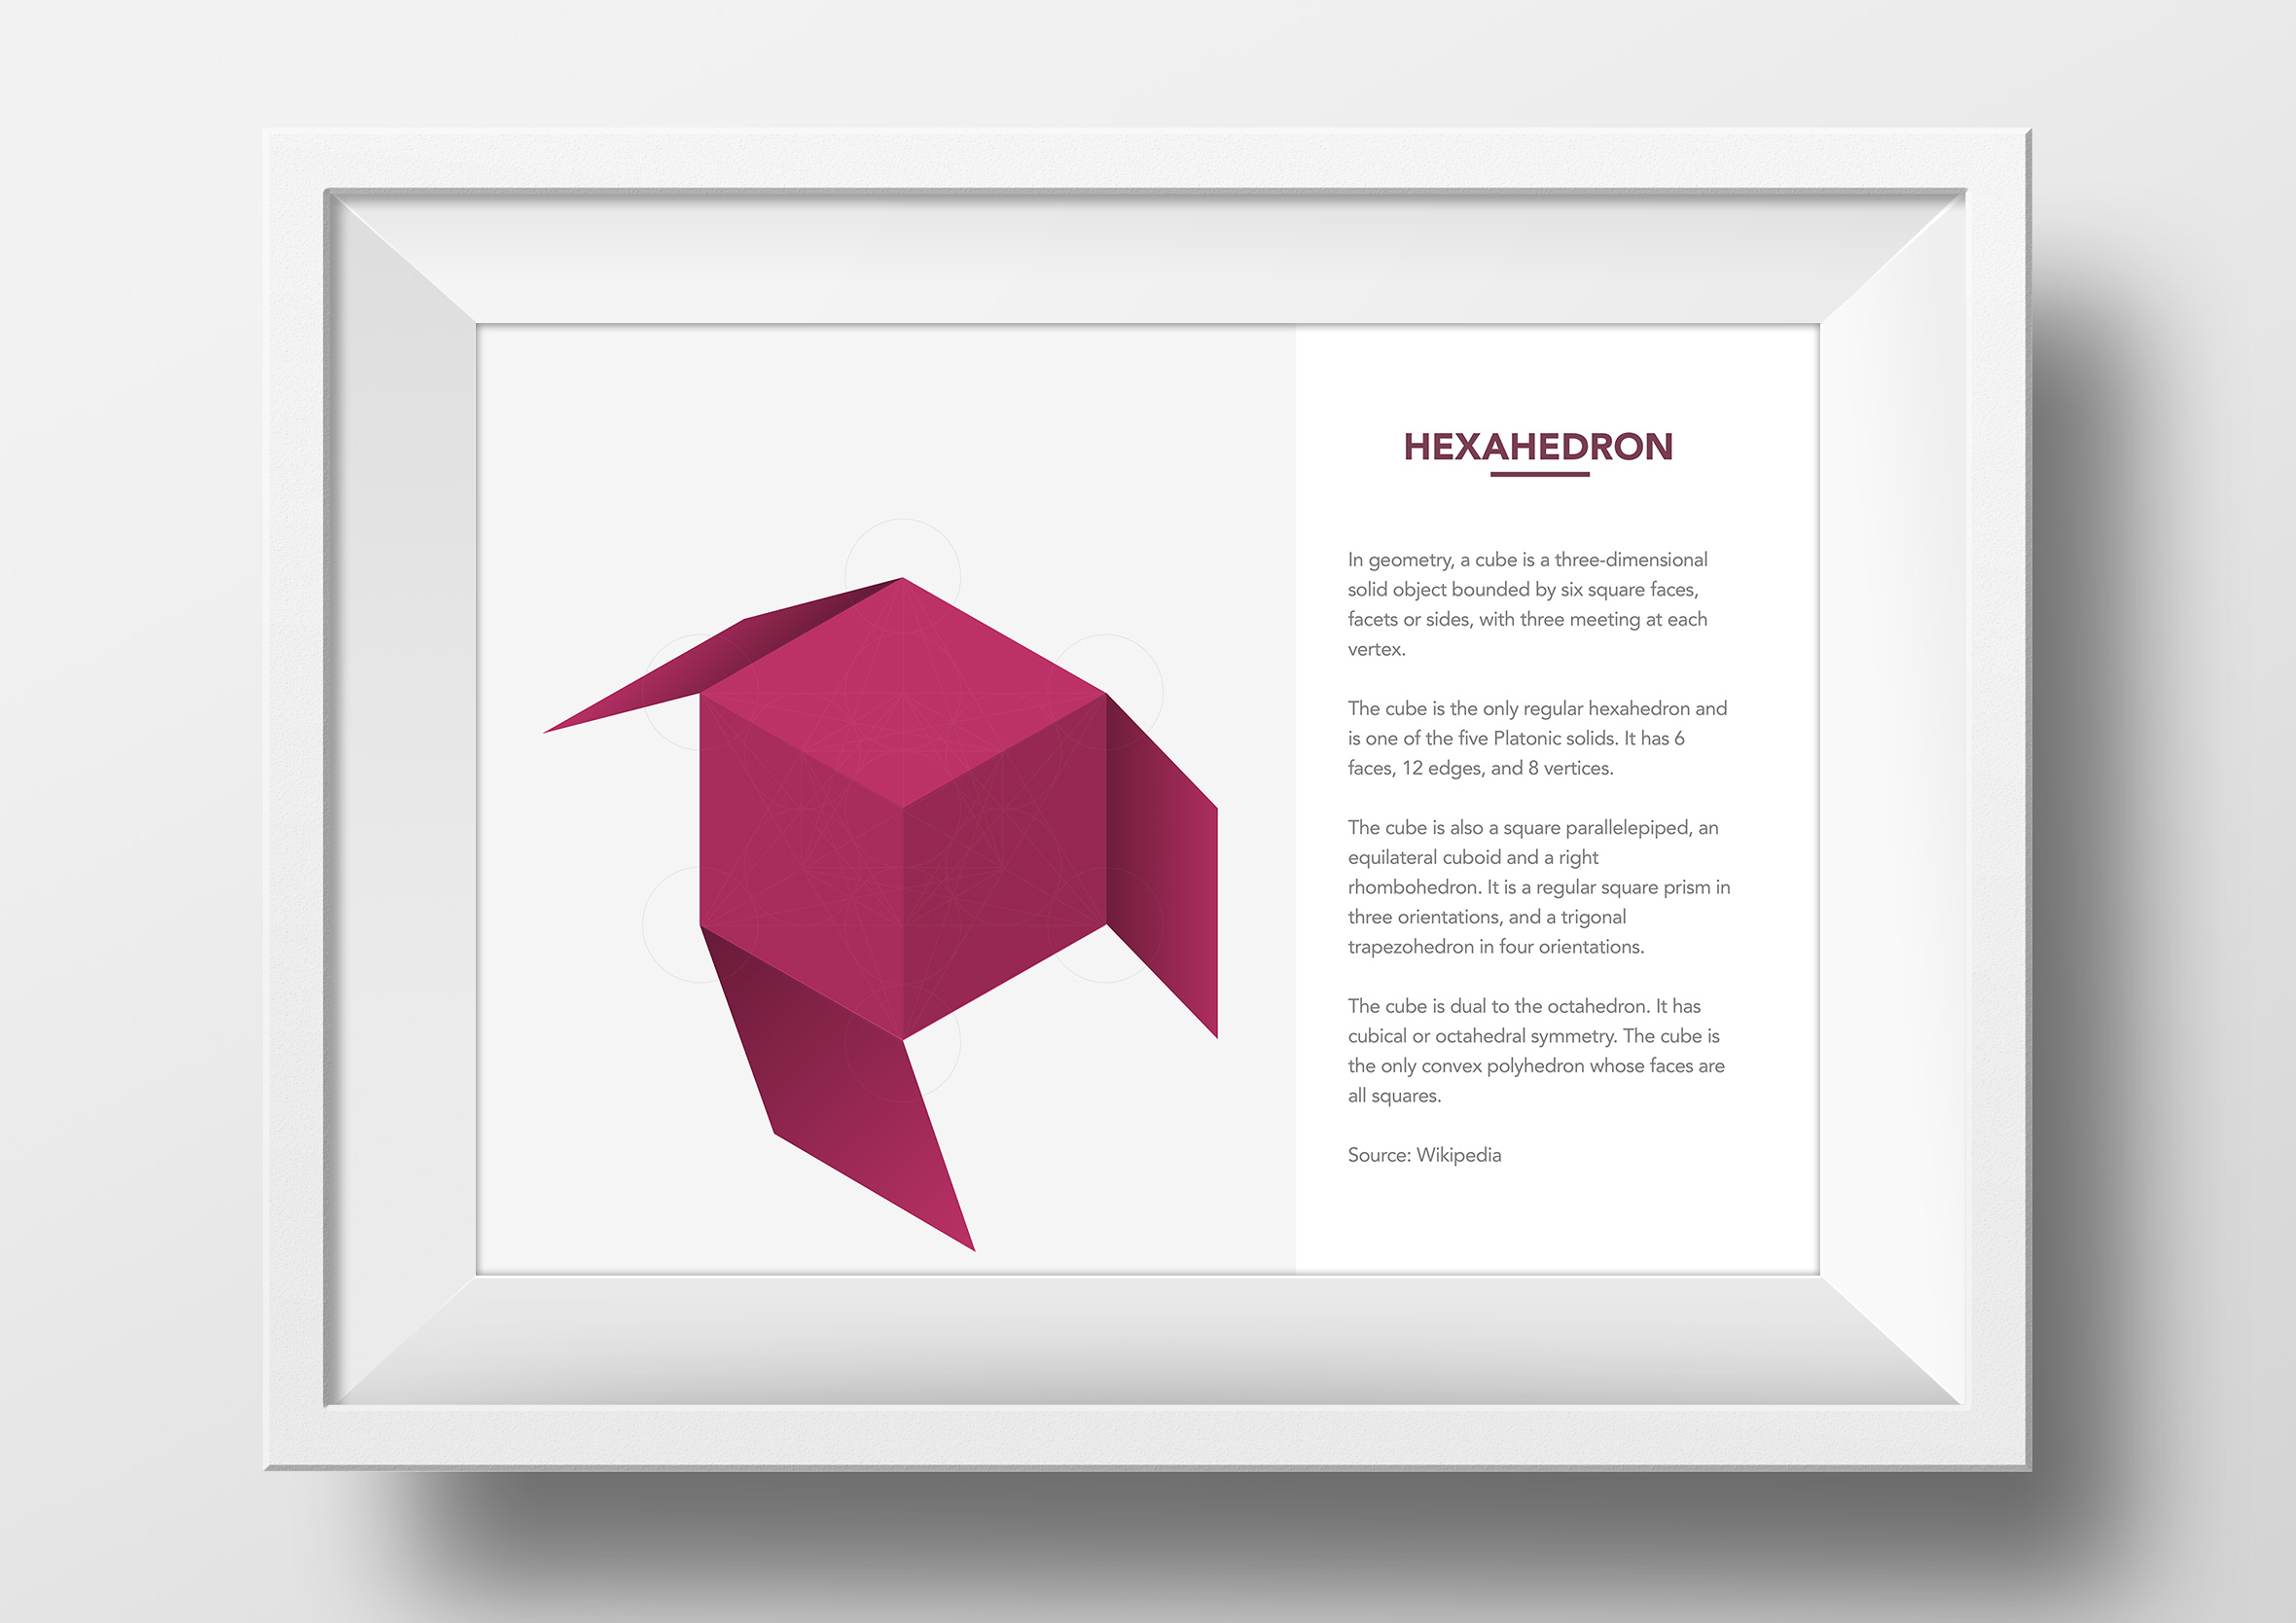 metatrons cube origami app single framed print hexahedron